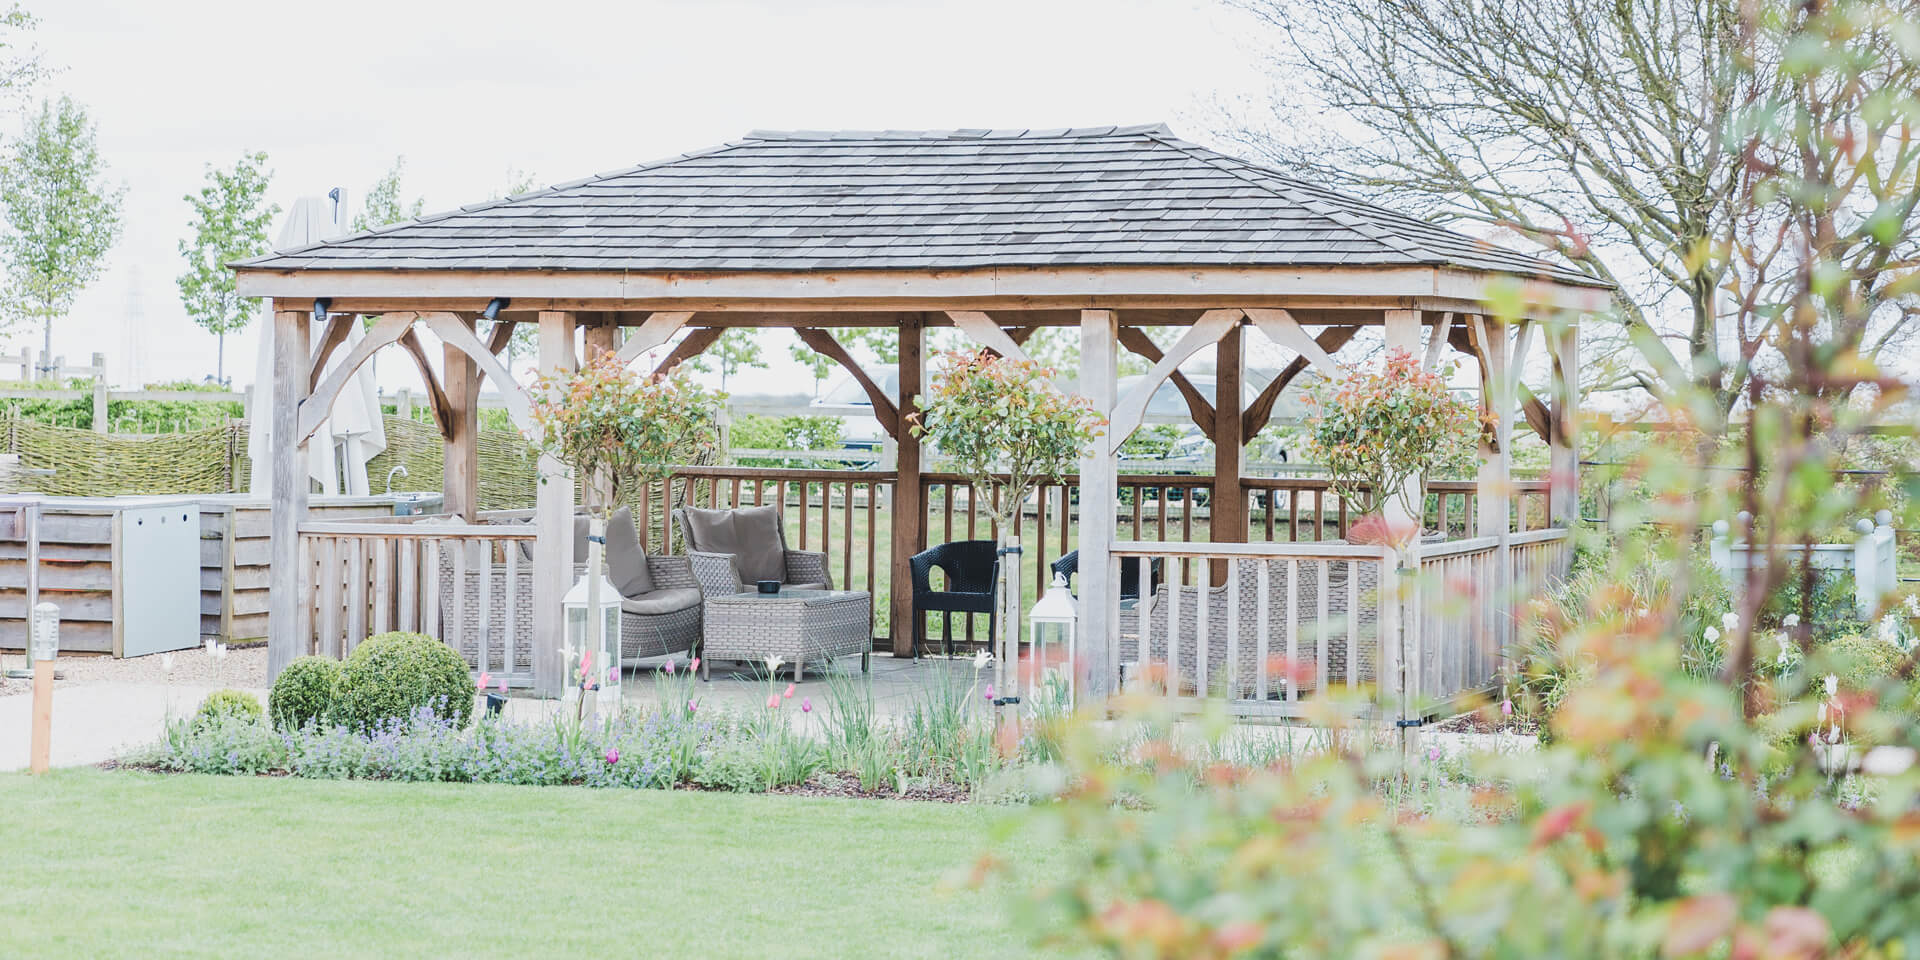 At Bassmead Manor Barns there is plenty of undercover outdoor space for your wedding guests to relax on your wedding day